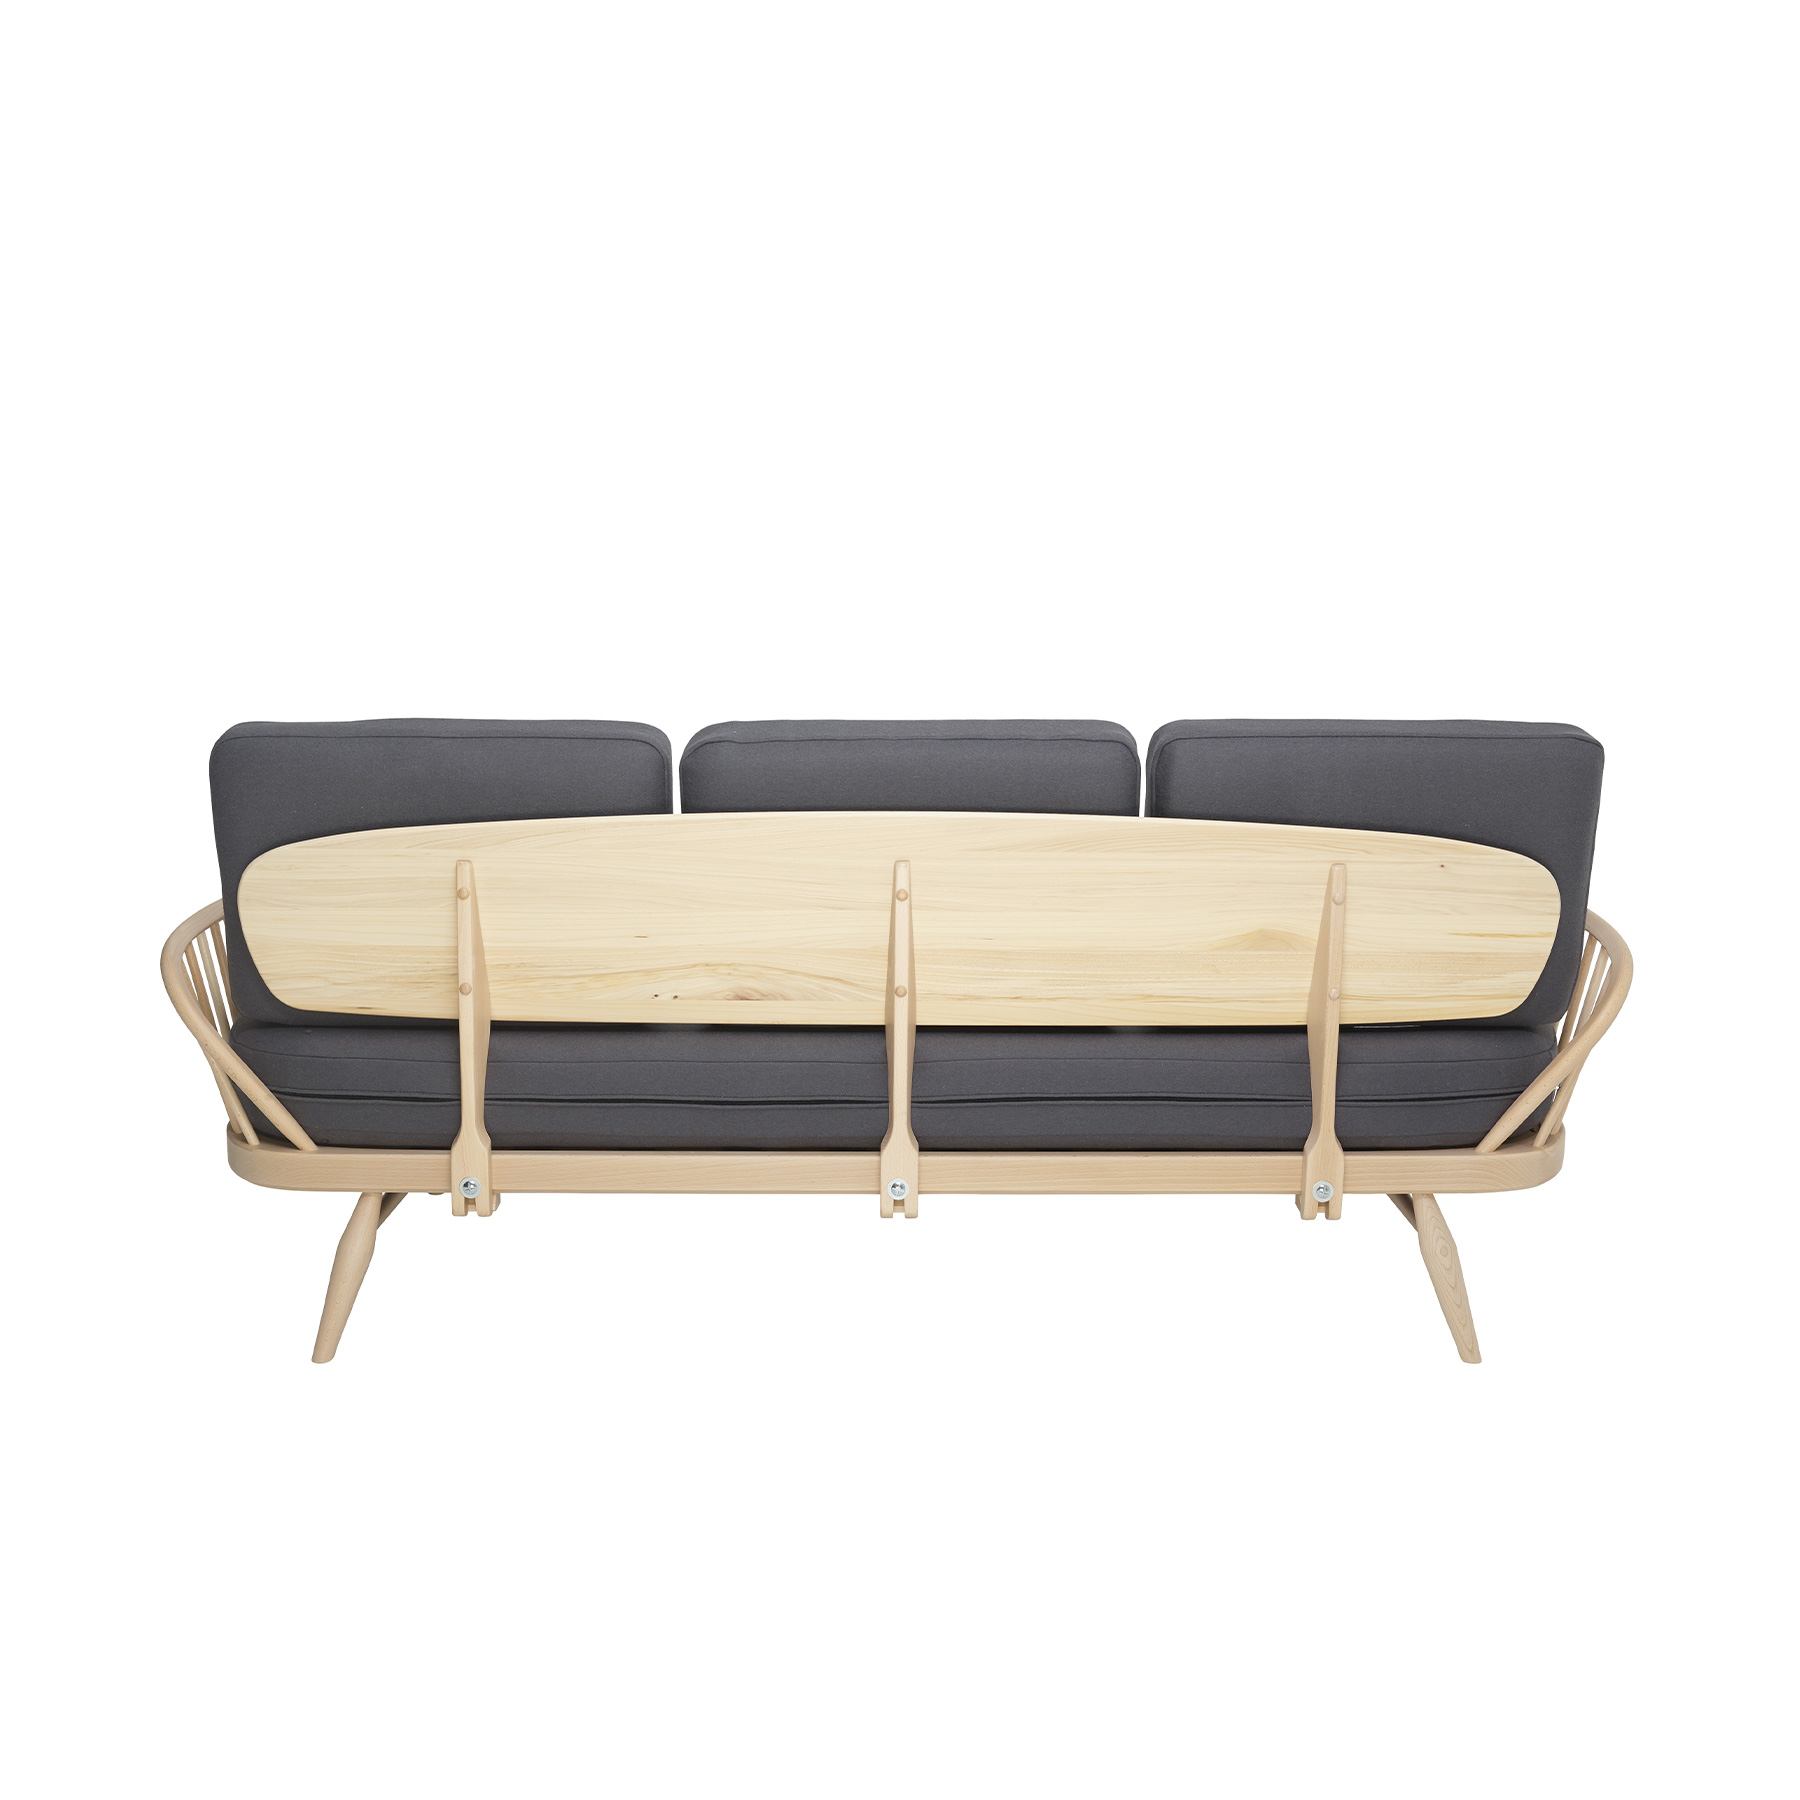 Originals Studio Couch - <p>The Ercol Originals are pieces of timeless and classic design that never date or show their age. It is furniture that is as relevant and as functional now as it was when it was created in the 1950s and 1960s. This furniture was designed by ercol's founder, Lucian Ercolani, who drew for his inspiration on the time proven local design and craft in the Chiltern Hills around where he lived and built his first factory in 1920 in High Wycombe. Using the strength of beech and the beauty of elm he carried this definition on into a huge variety of dining, kitchen, and school chairs and then extended the idiom into the low easy chair range epitomised by the 206 armchair and the studio couch. The beauty of the colour and the grain of the elm took Lucian on to use elm for the tables and cabinets of the Originals and the following Windsor range. This versatile couch features an attractive steam bent frame consisting of tapered spindles and arched arm rests. The back rest is formed from a large board of Ash. Designed to function as a large couch and as an occasional single bed for guests, this distinctive sofa is both eye catching and wonderfully flexible. The seat and back cushions are made of foam and offer a comfortable sit.  Rubberised webbing at the base of the settee provides extra support.  The couch will be covered in your choice from a range of ercol fabrics, to suit the style and decor of your home. The studio couch frame will be finished in your choice of a selection of lacquer finishes or in a choice of our painted colour finishes, which protects the timber as well as fitting in with your style and decor.</p>